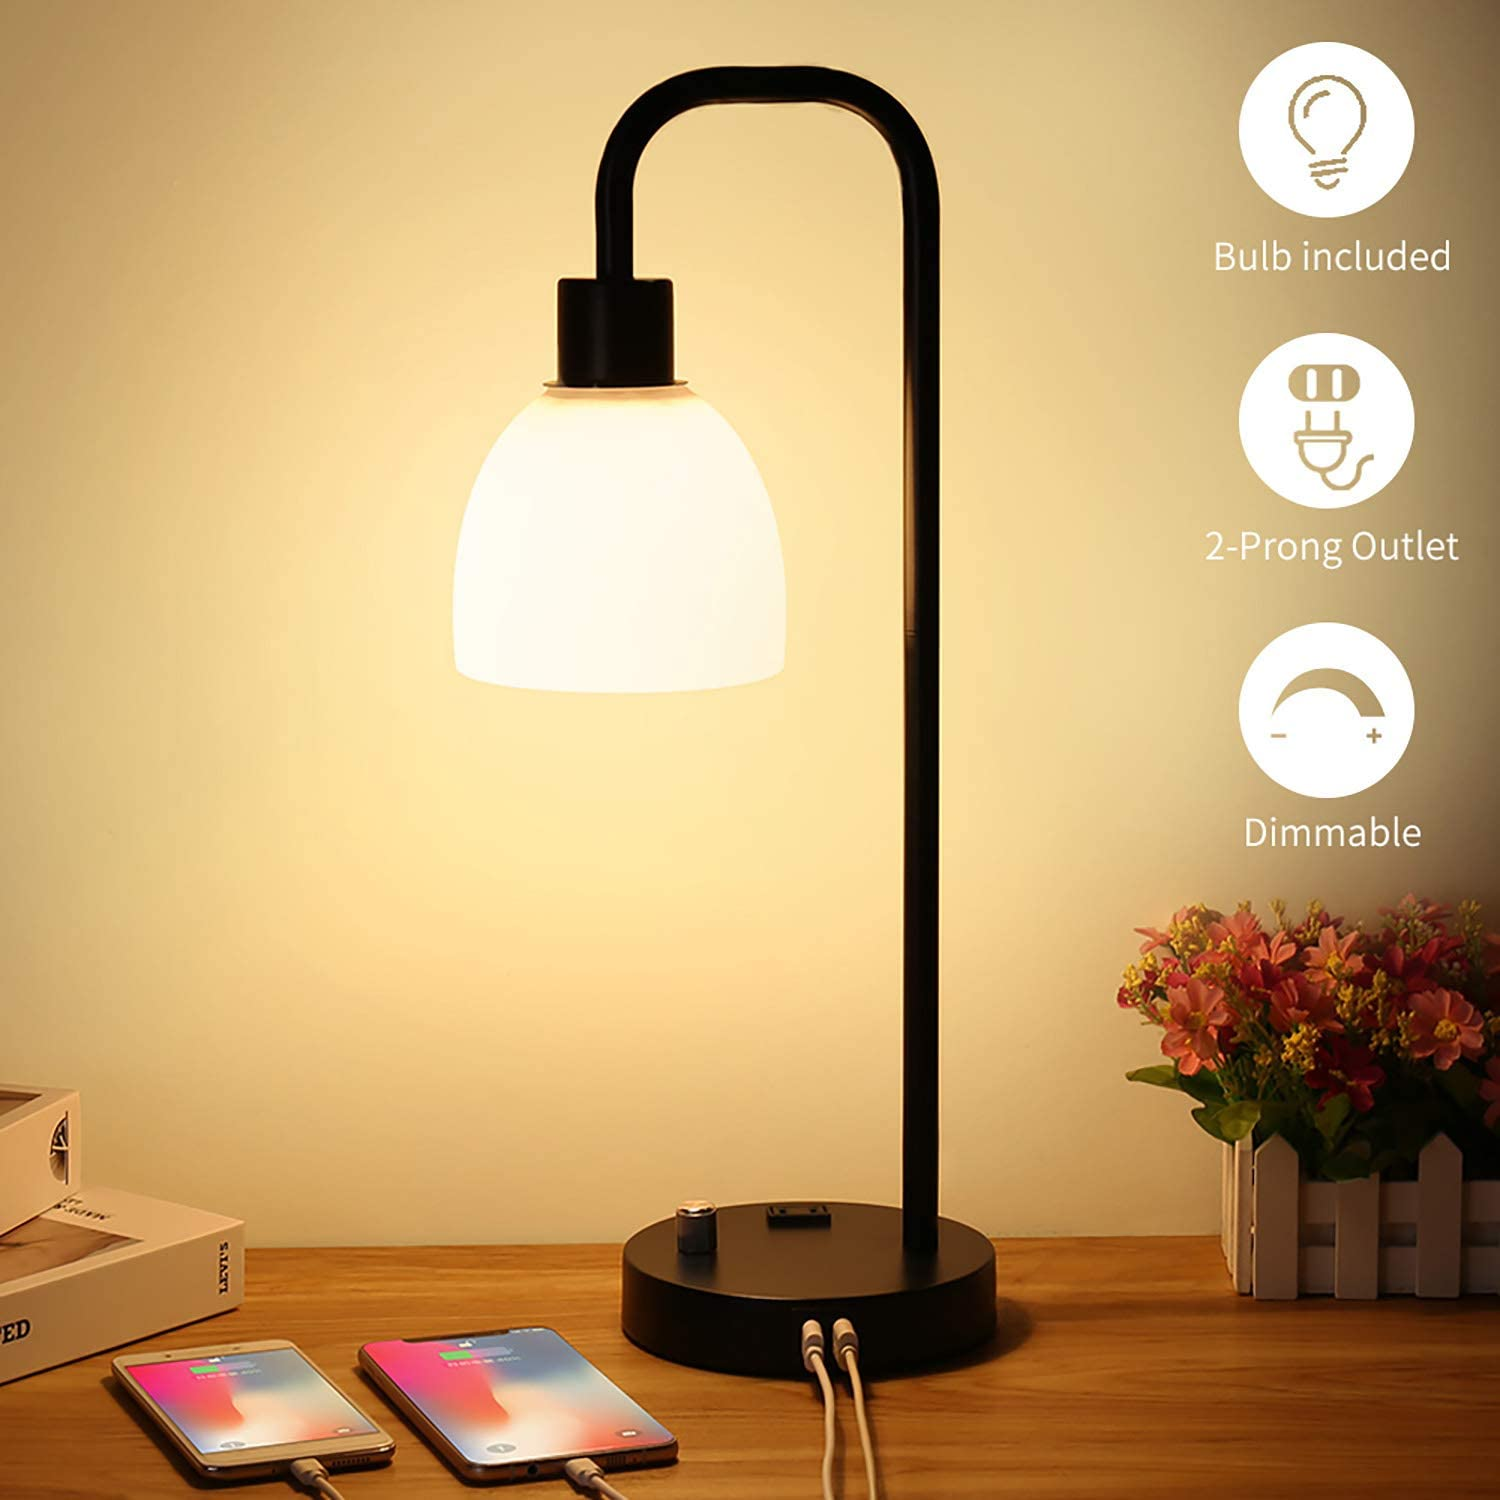 Zermurd Industrial Table Lamp Stepless Dimmable Modern Bedside Lamp With Two Usb Ports And Ac Outlet Opal Glass Shade Black Vintage Nightstand Lamp For Bedroom Living Room Office 7w Bulb Included